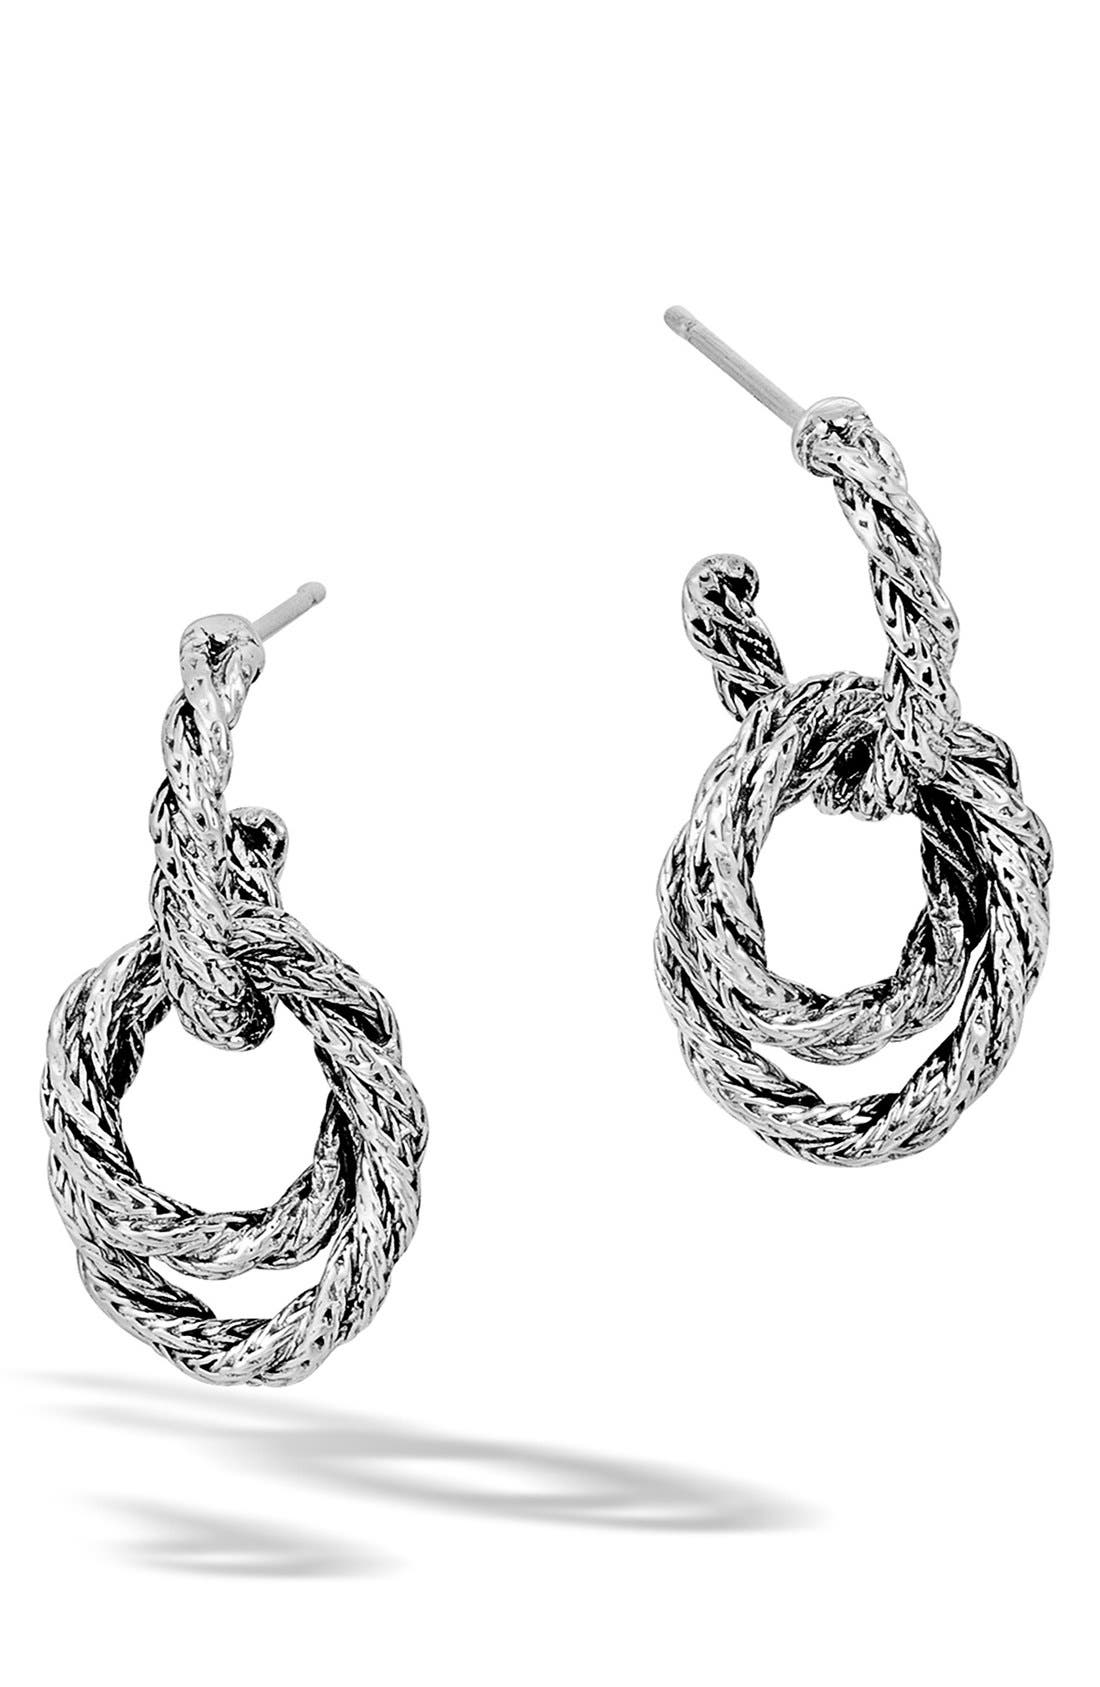 Alternate Image 1 Selected - John Hardy 'Classic Chain' Double Twisted Hoop Earrings